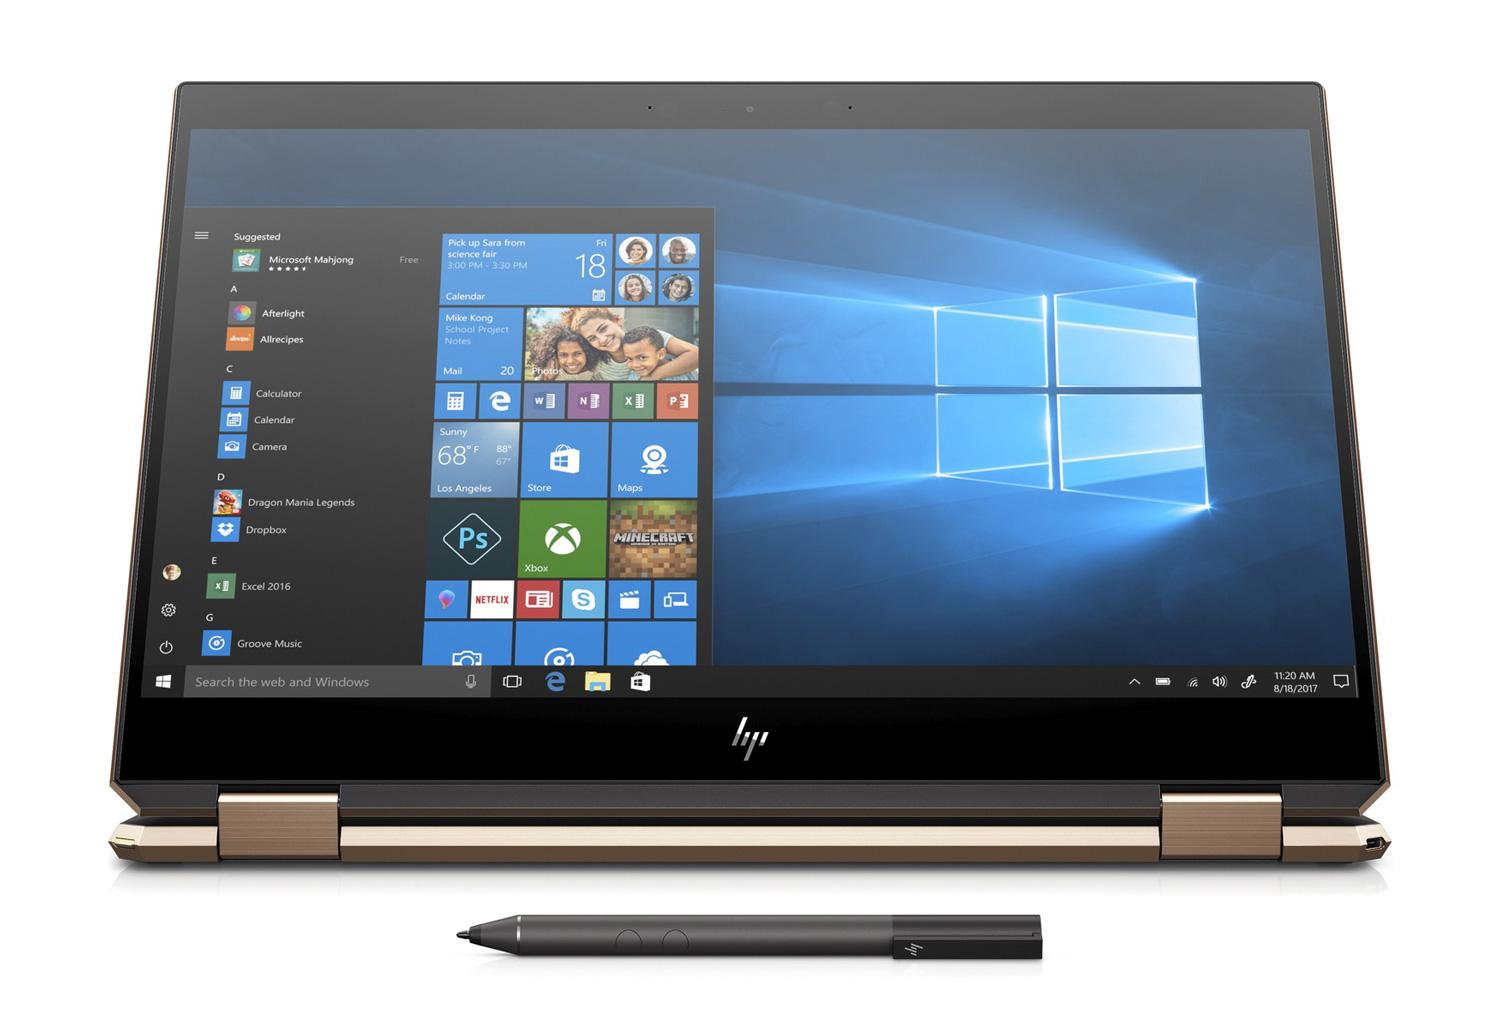 Ordinateur portable HP Spectre x360 15-df0007nf Cendre 4K Tactile - Hexa Core, GTX 1050 Ti - photo 6